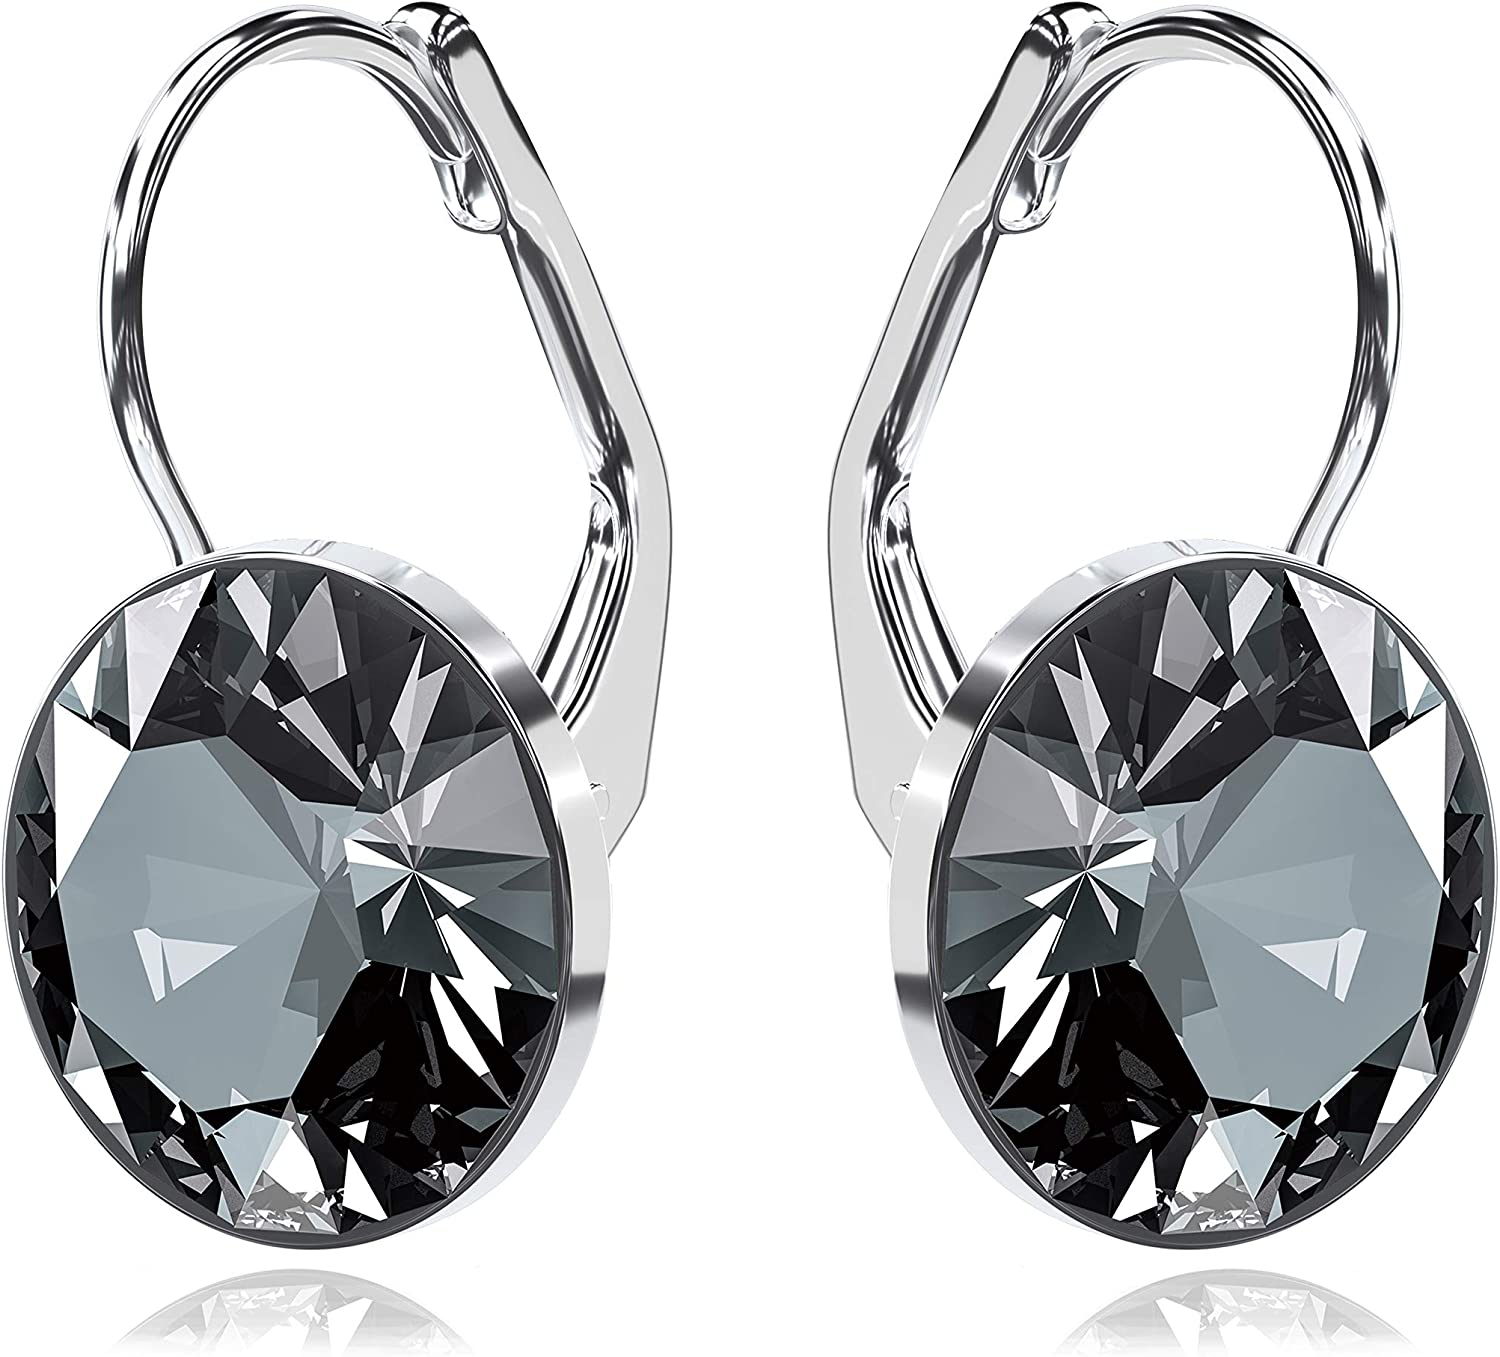 5 sections 4.5 inch Statement Length Interesting and eye-catching Black Shiny Finish Earrings Gorgeous Pierced Lever Back Drops